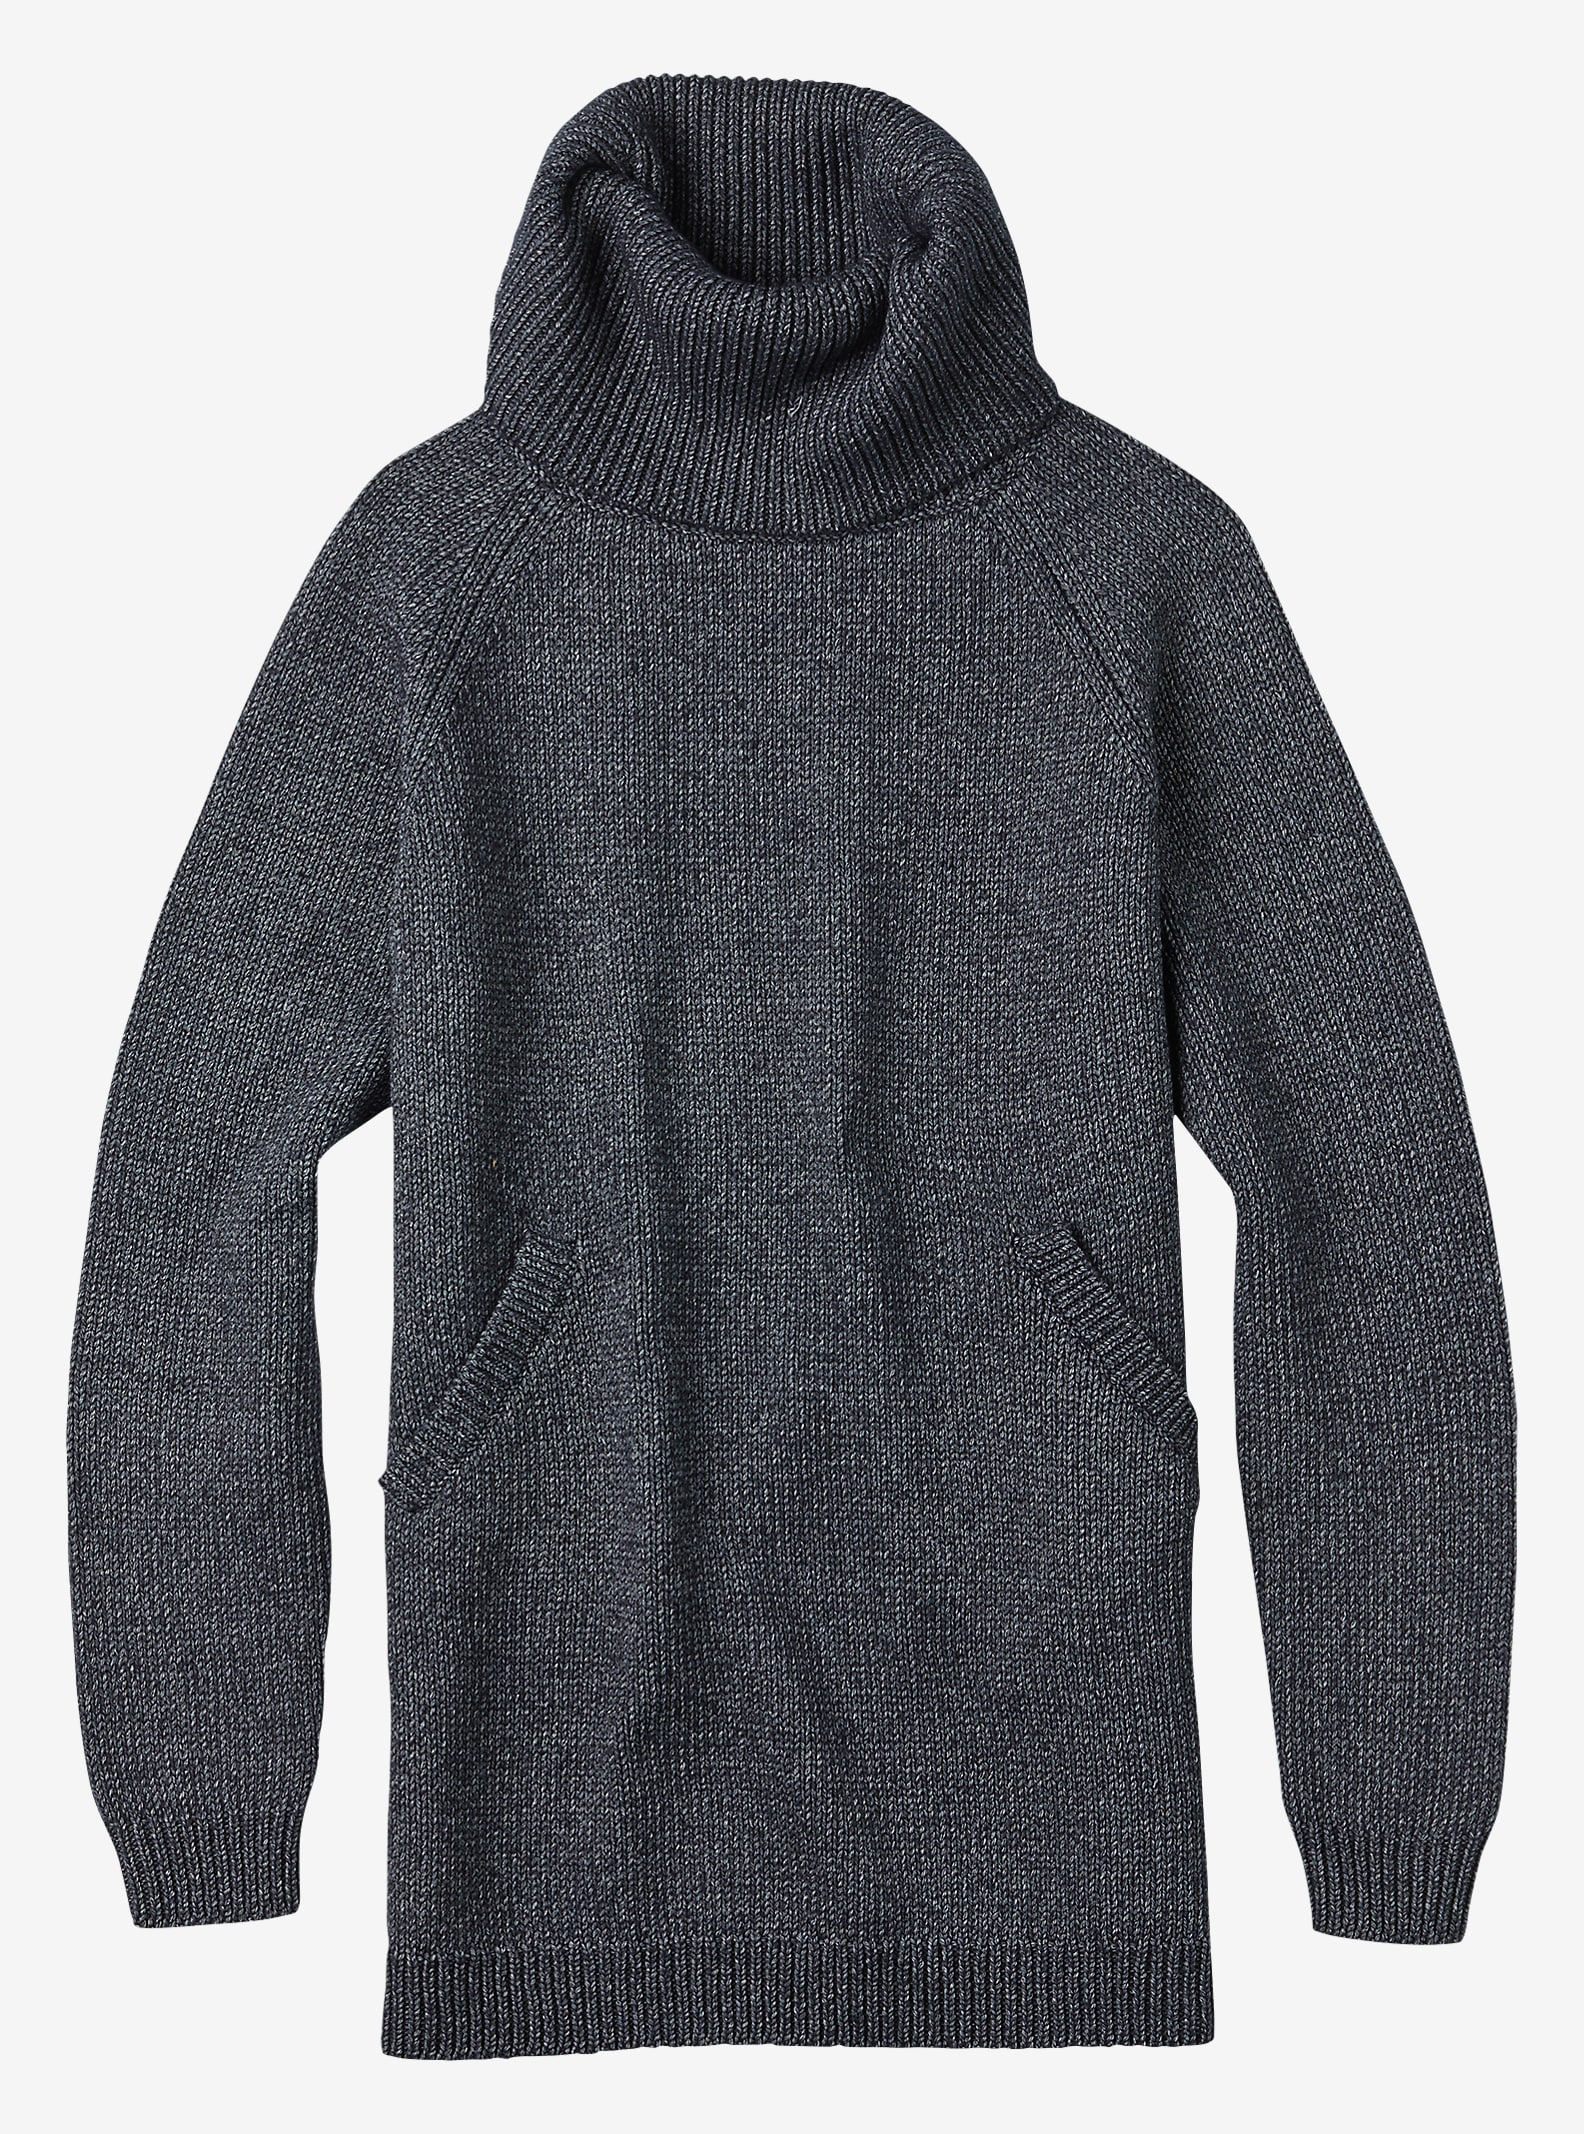 Burton Avalanche Pullover angezeigt in True Blue Heather